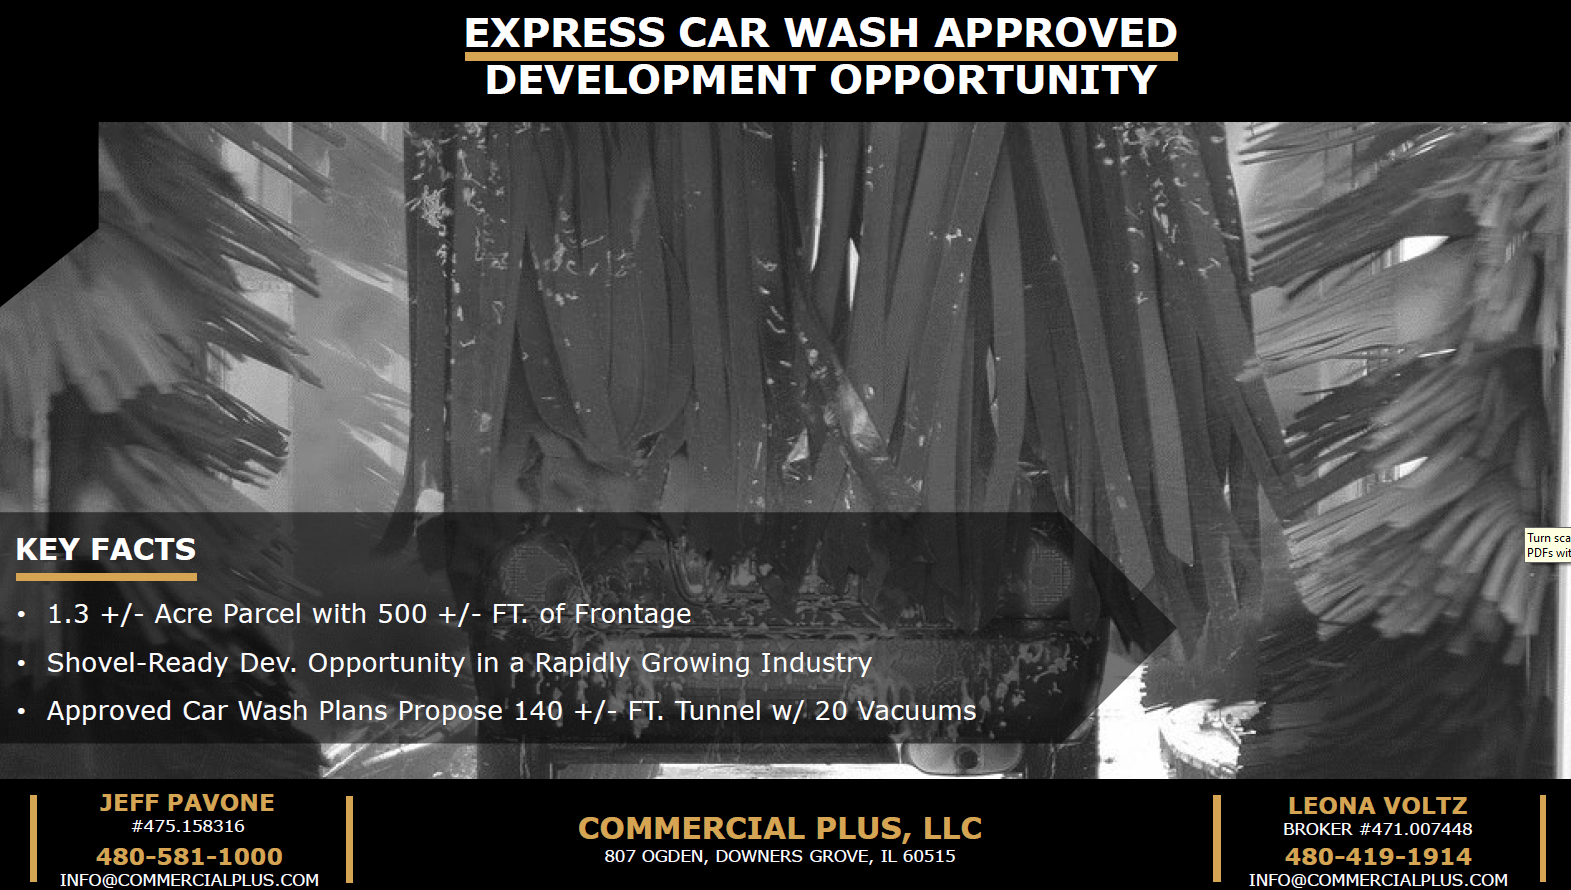 Site Approved for Car Wash